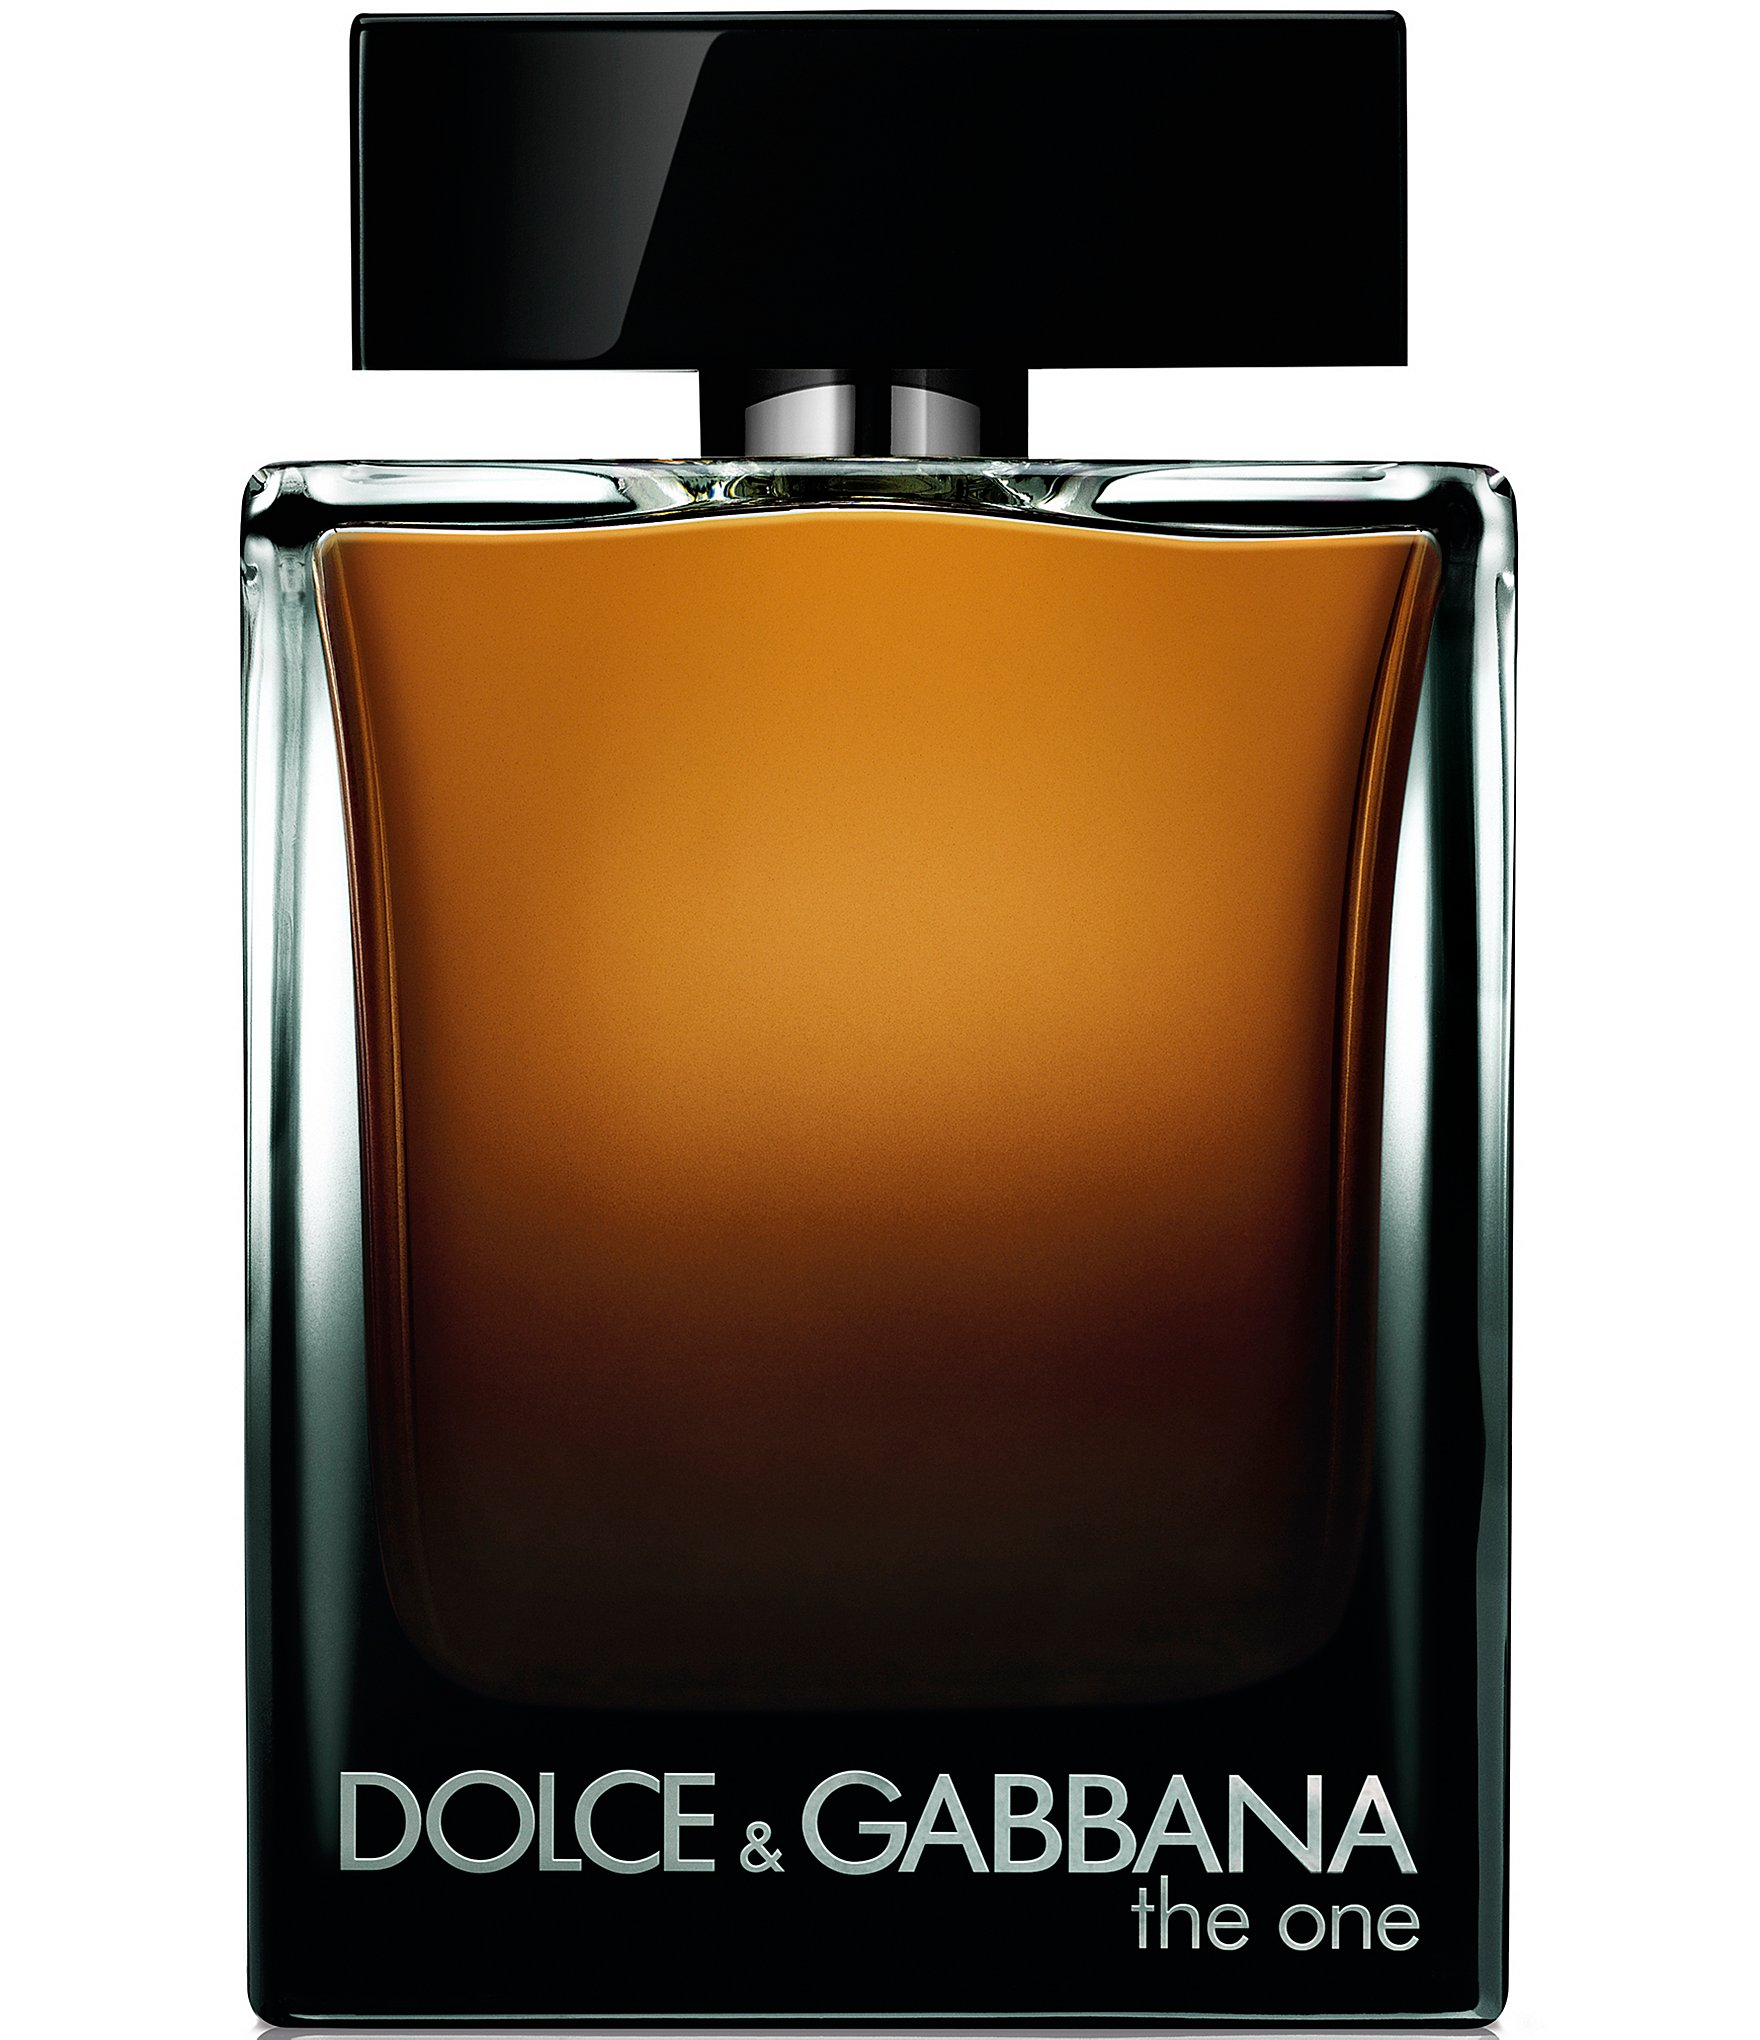 Dolce & Gabbana The One for Men Eau de Parfum Spray | Dillard's